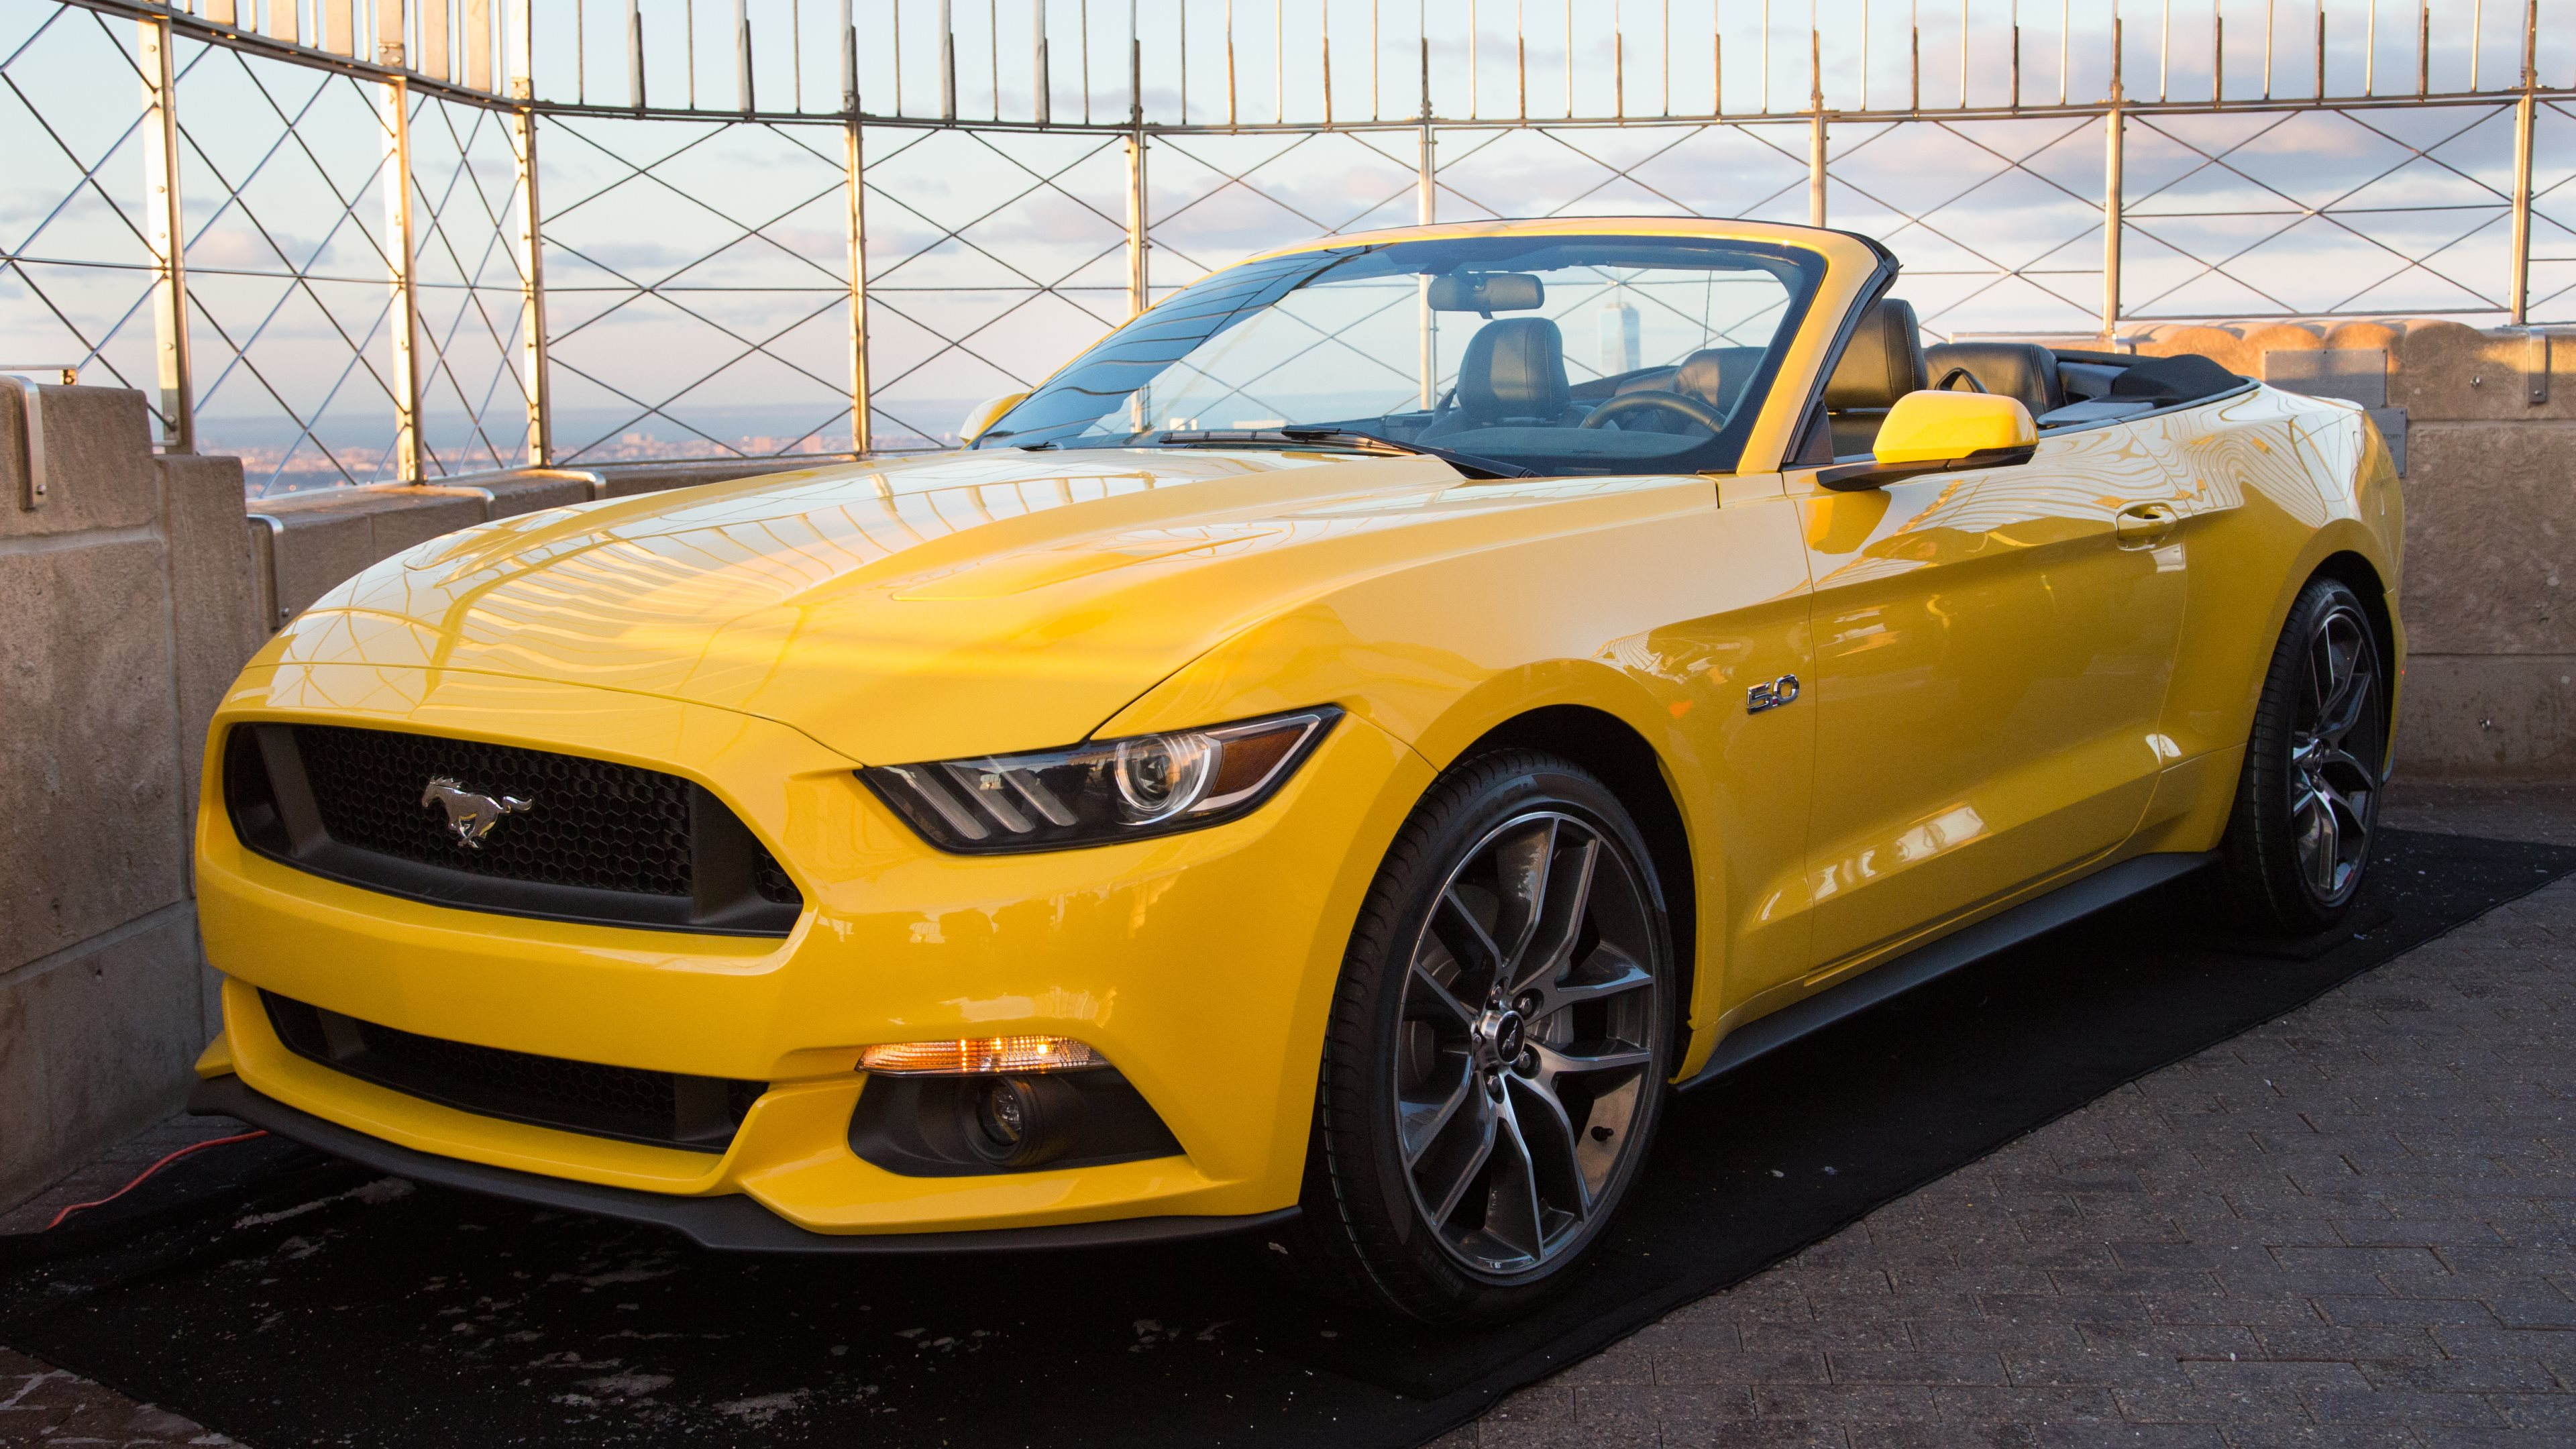 2015 Ford Mustang Convertible HD Wallpapers 4K Wallpapers 3840x2160